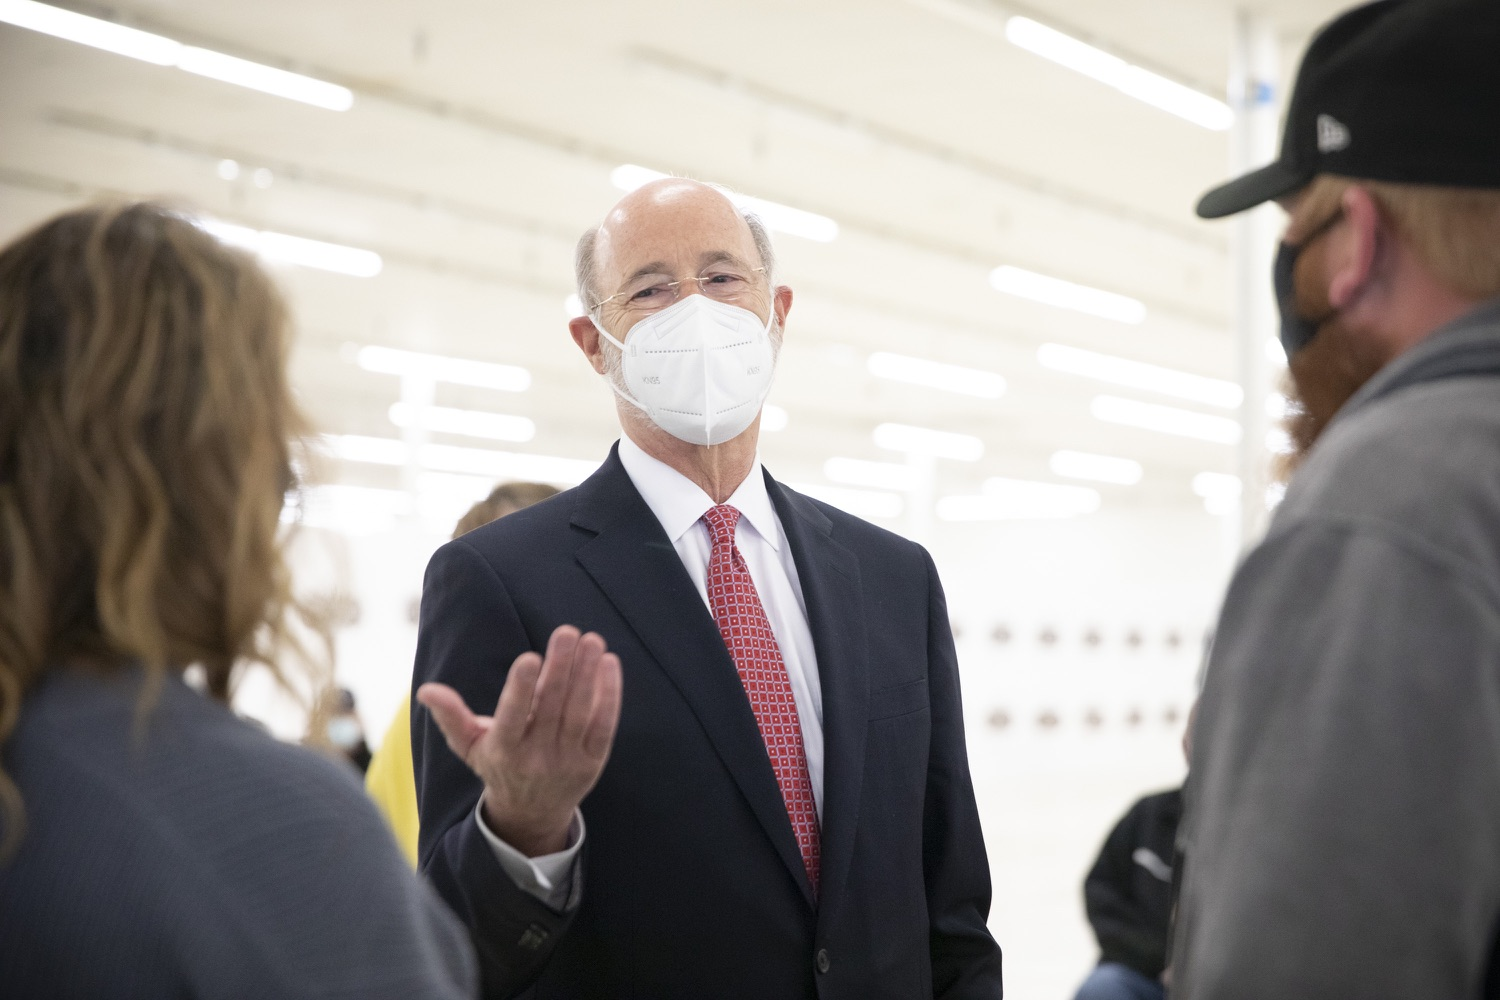 """<a href=""""https://filesource.wostreaming.net/commonwealthofpa/photo/18682_gov_vaccineClinic_dz_023.jpg"""" target=""""_blank"""">⇣Download Photo<br></a>Pennsylvania Governor Tom Wolf touring the regional vaccination clinic.   Governor Tom Wolf today visited the Guthrie Health vaccine clinic in Sayre, Bradford County today to tour this clinic providing vaccines to a large swath of rural residents and to talk about progress in vaccinating Pennsylvanians now that eligibility is open to all individuals age 16 and older.  Sayre, PA   April 21, 2021"""